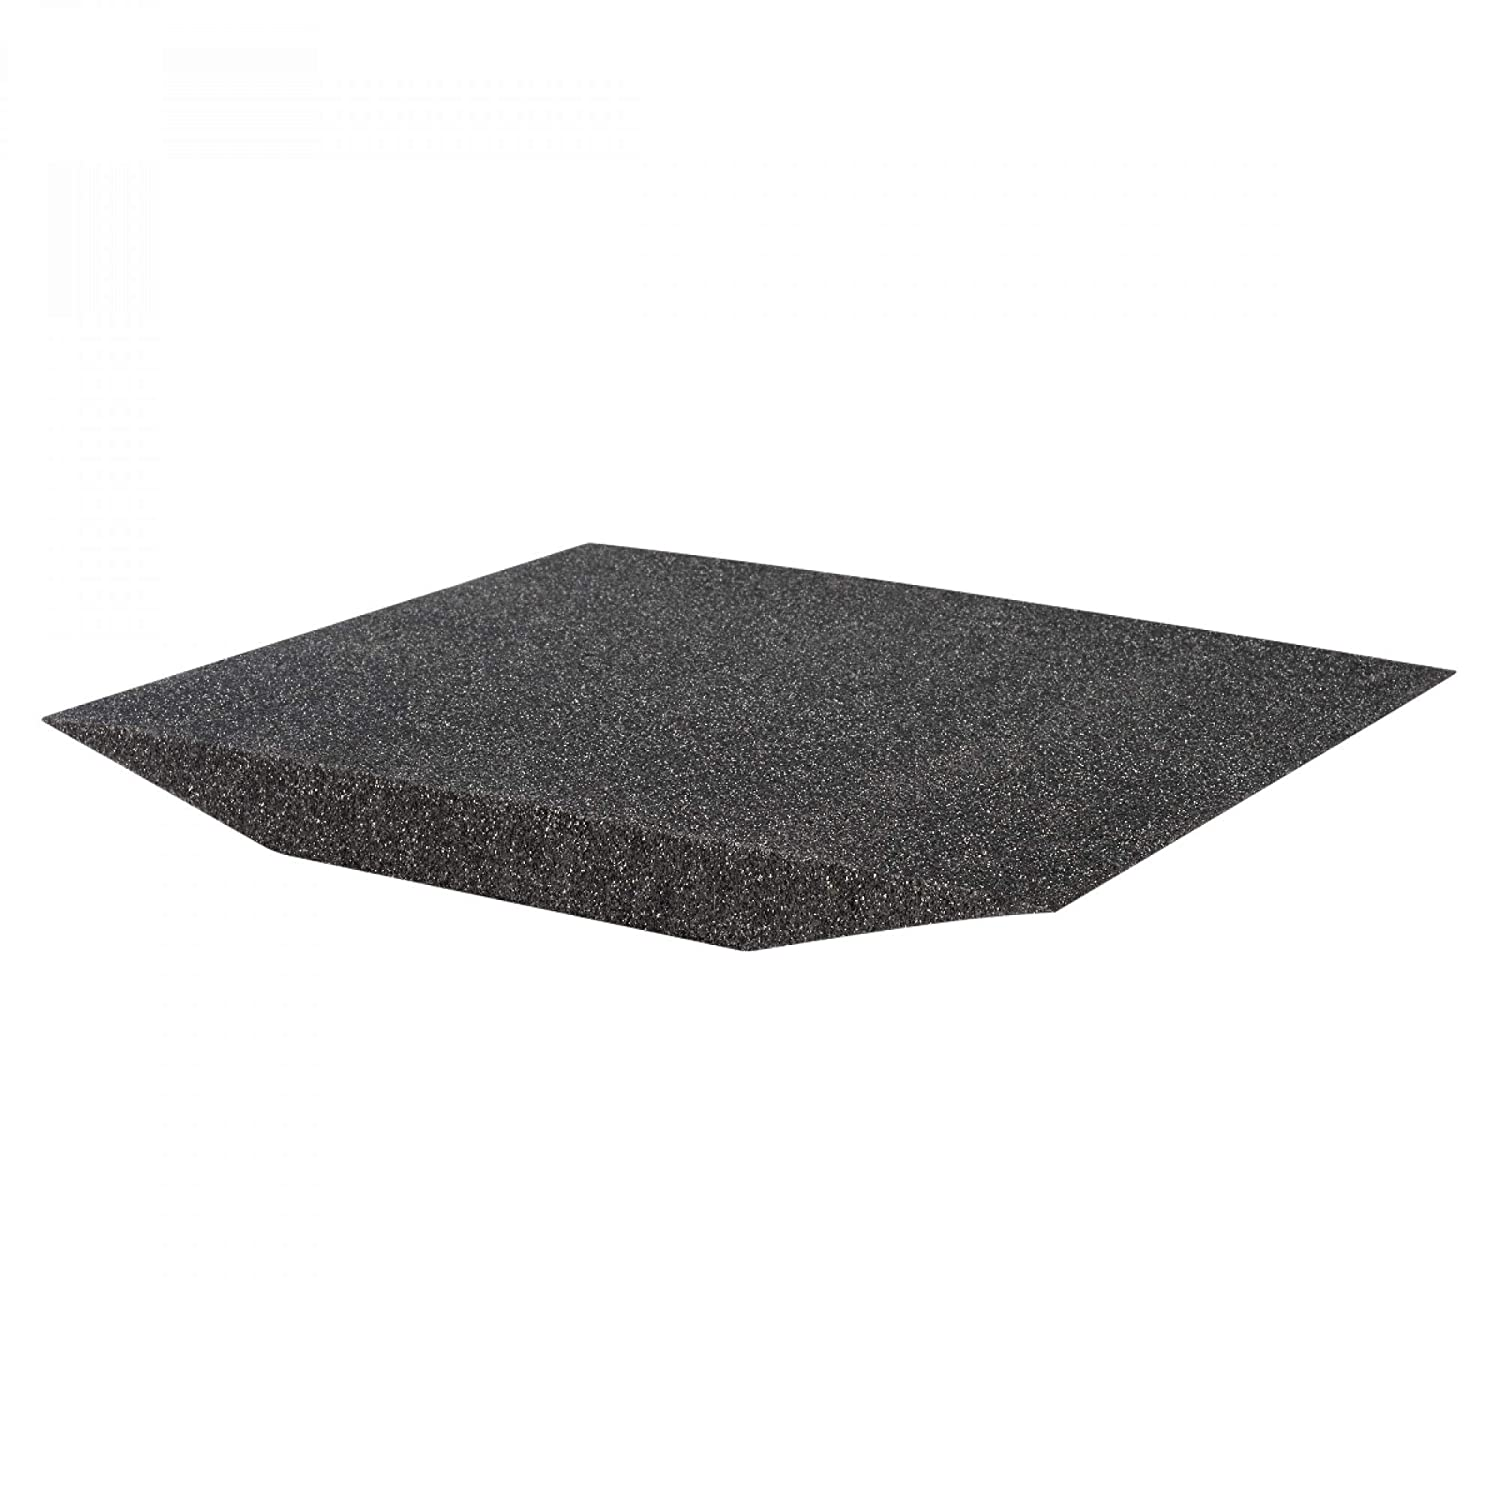 Sammons Preston Solid Seat Insert, Medical Grade Seat Cushion with Convex Bottom for Wheelchairs, Chairs, Long Term Sitting, Seat Cushion Insert for Padding The Lower Body & Trunk Support, 18